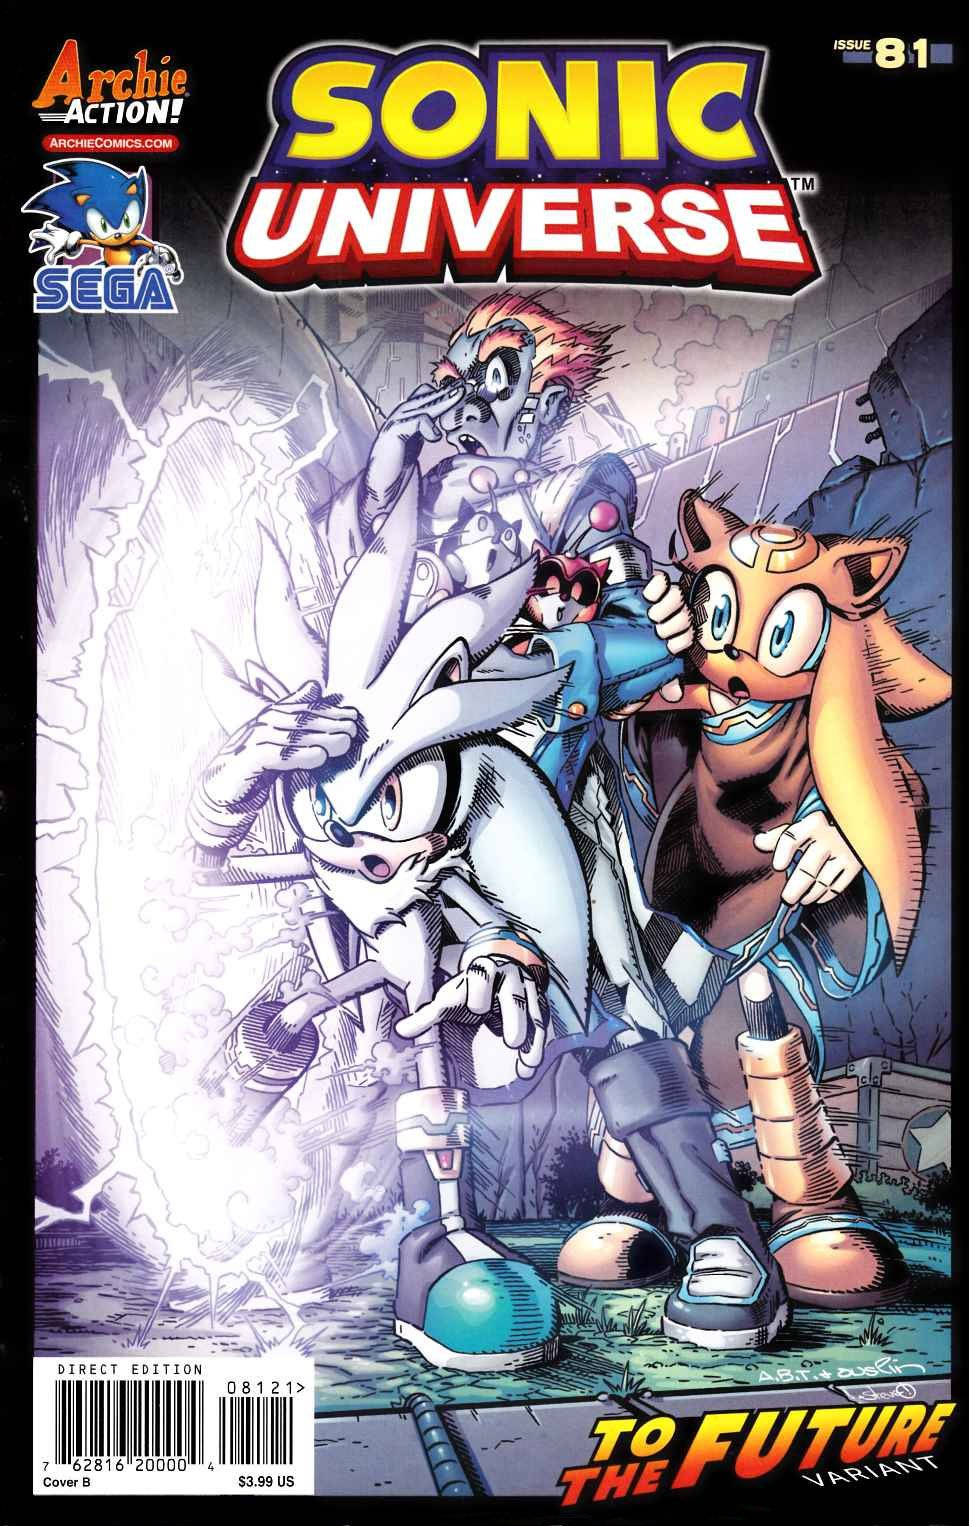 Sonic Universe 081 (December 2015) (To the Future variant)